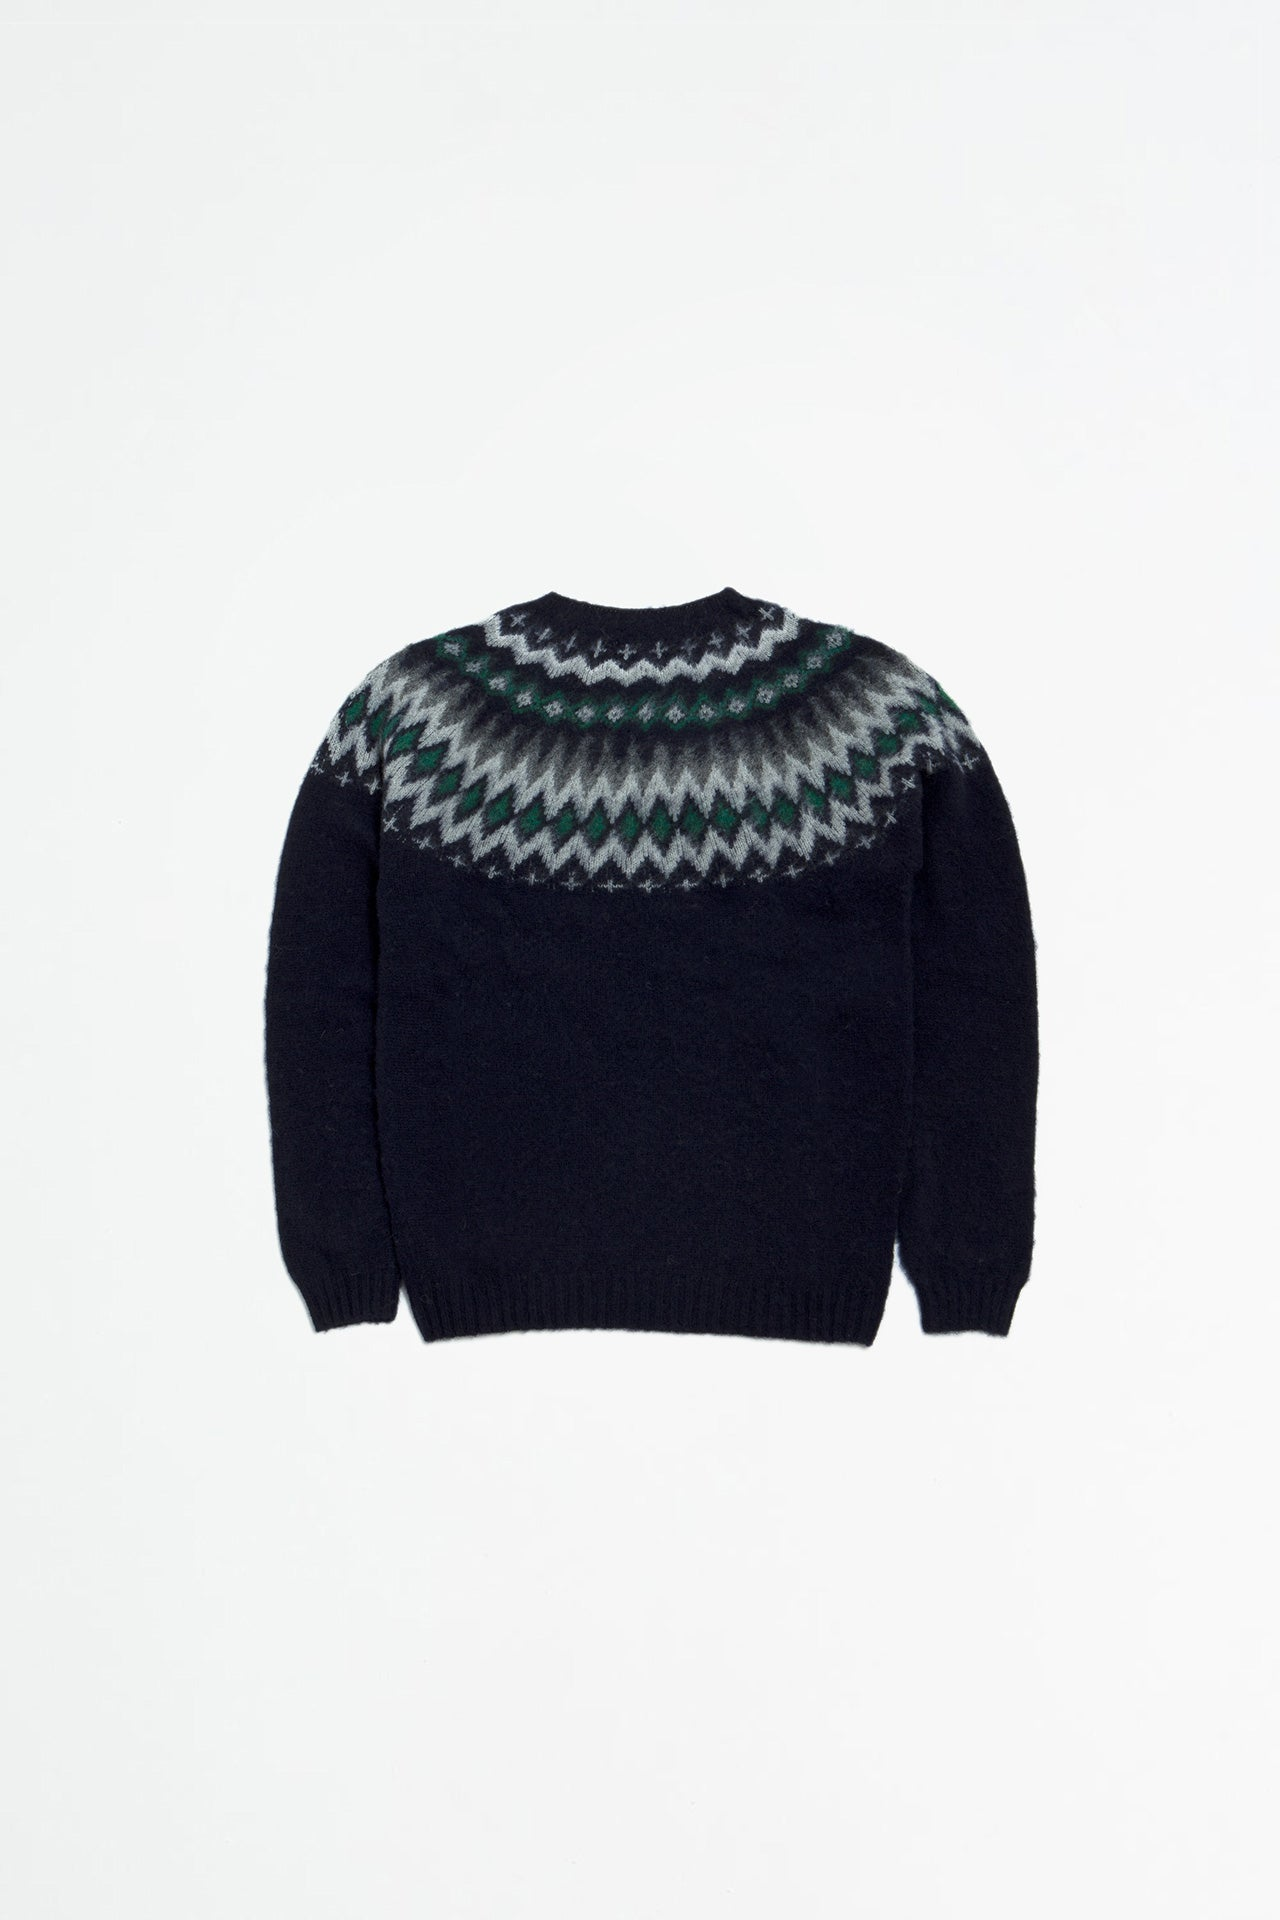 Birnir Fairisle dark navy